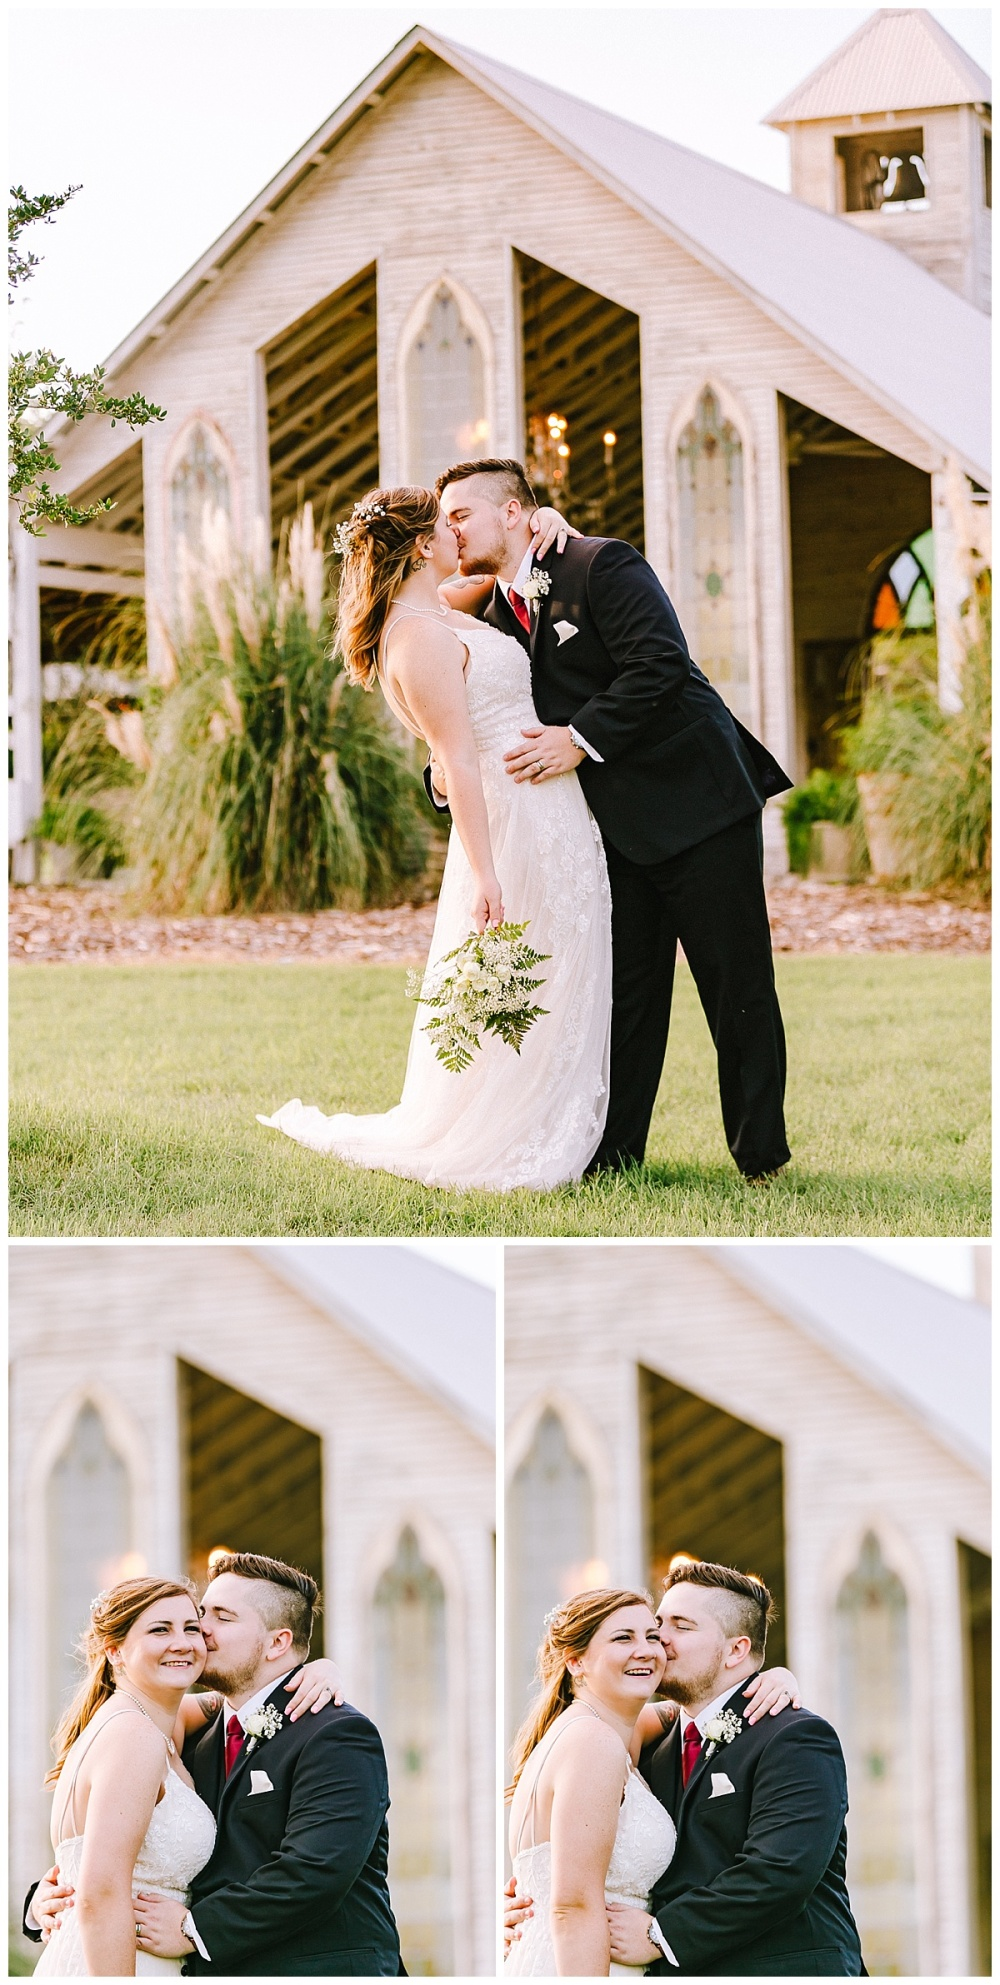 Texas-Wedding-Photographer-Gruene-Estate-Open-Air-Chapel-Carly-Barton-Photography-Katie-Nic_0054.jpg